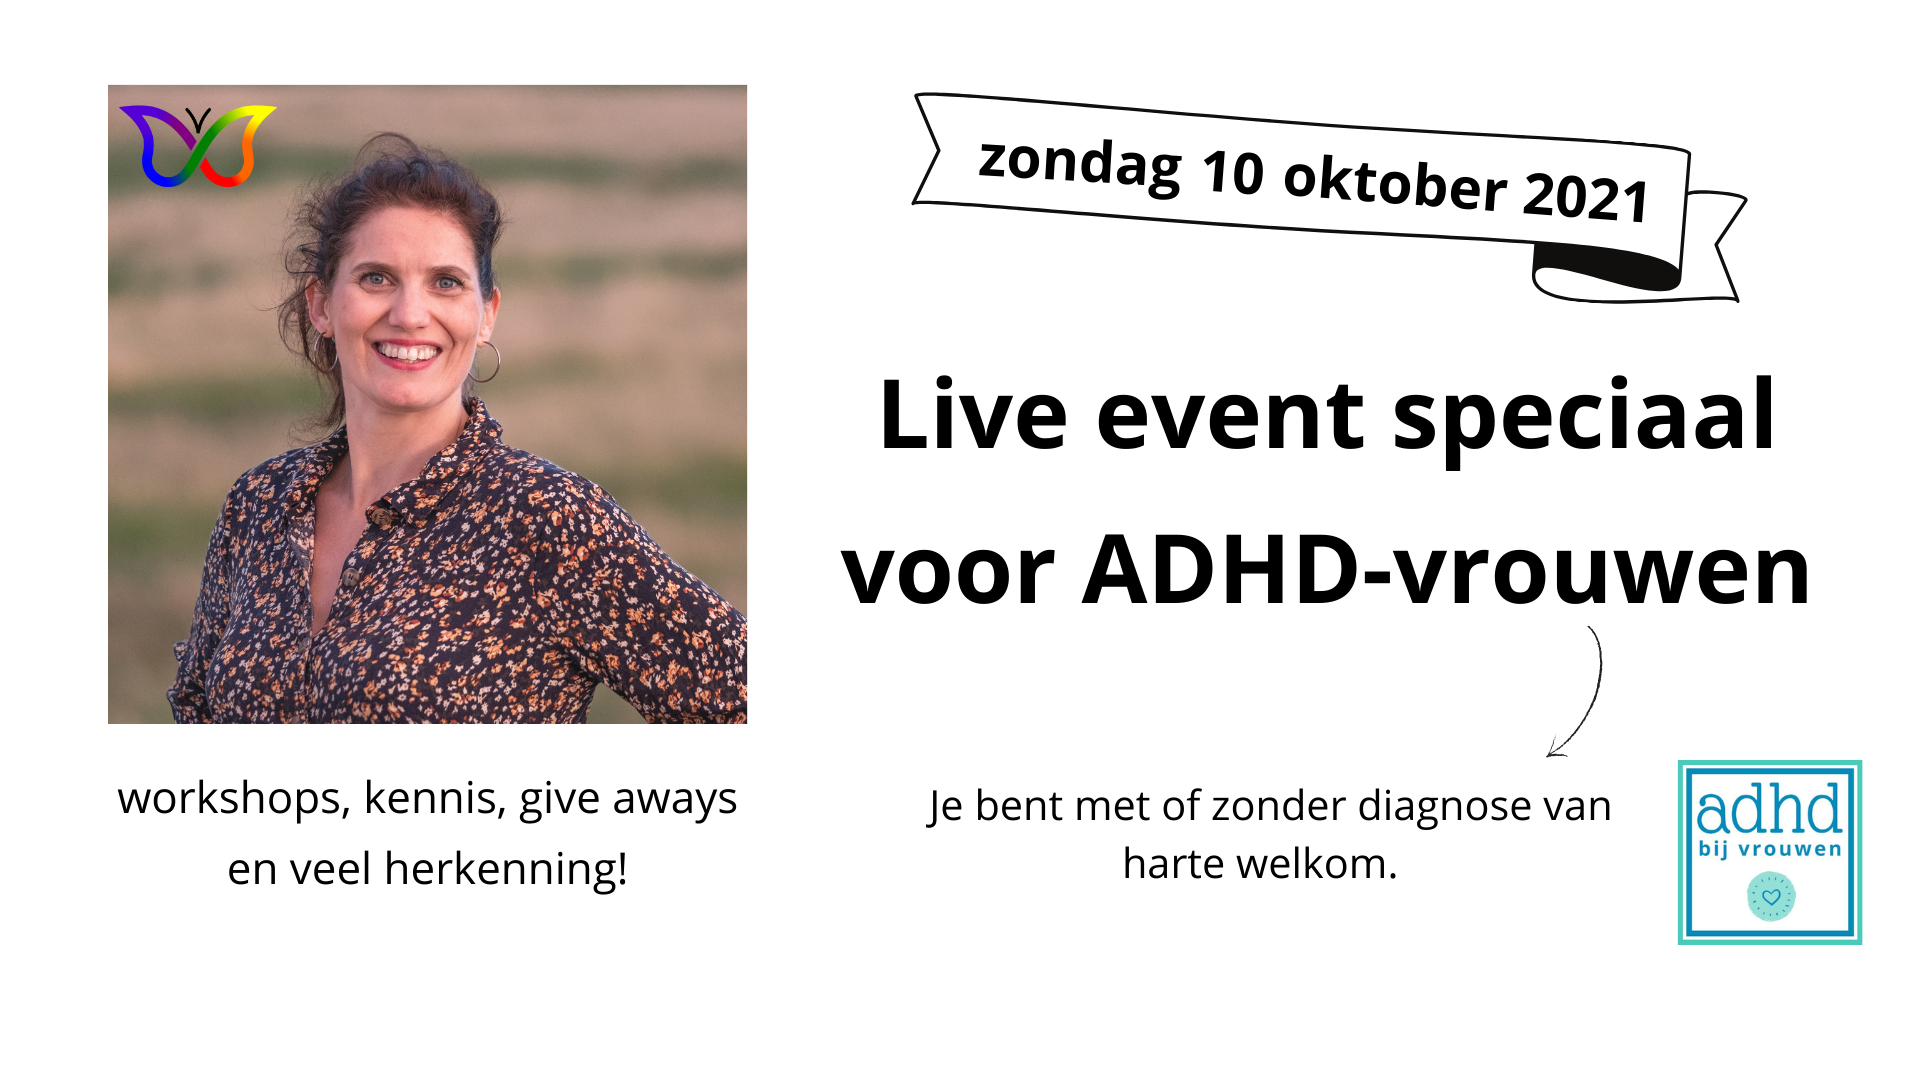 adhd live event